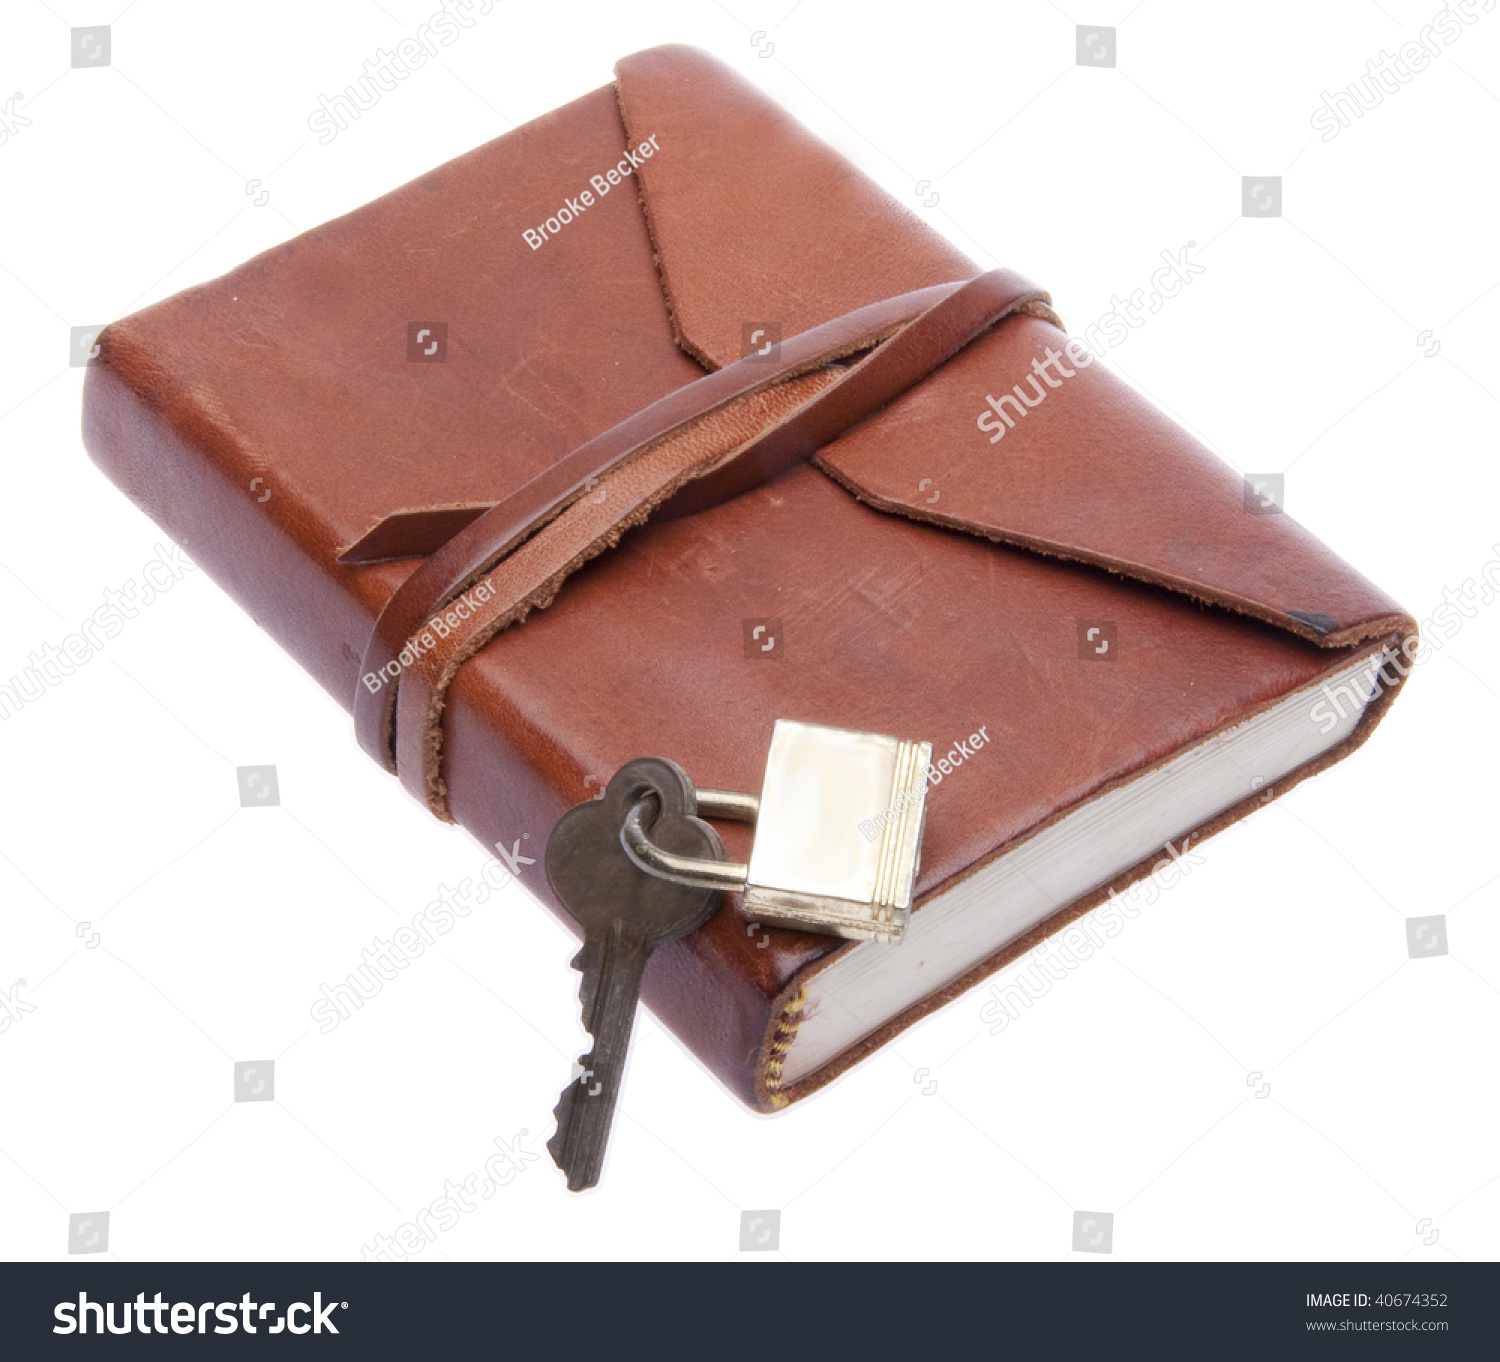 Old Leather Journal With Key Old Leather Journal Wi...